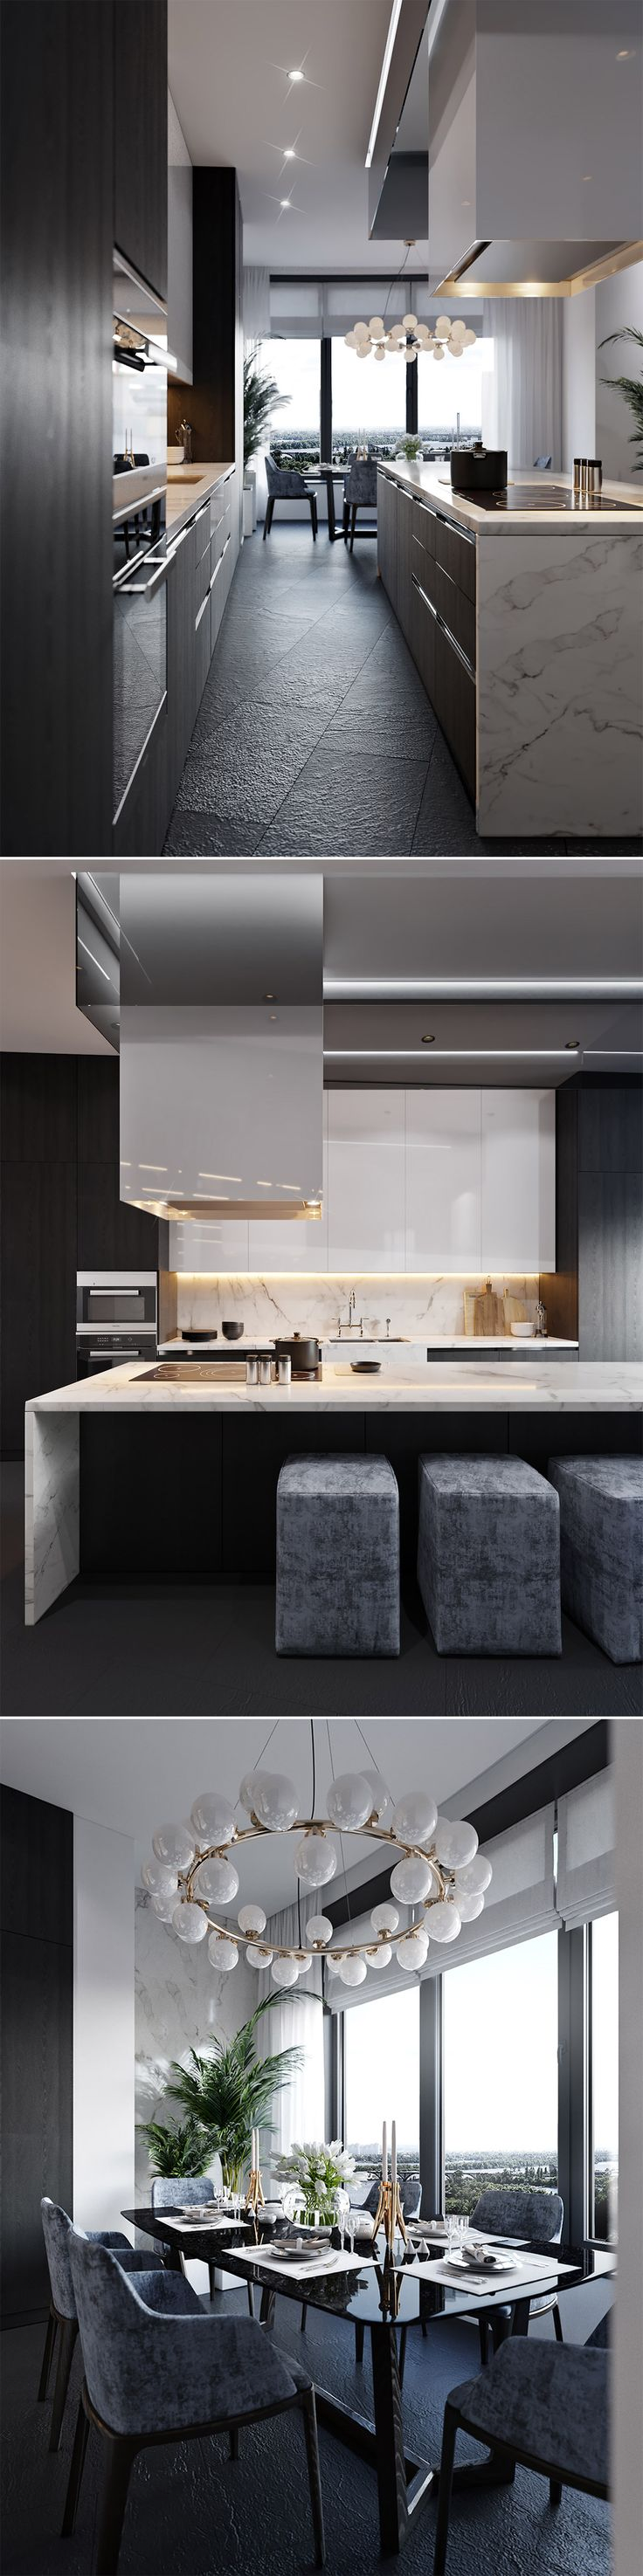 3290 best Modern Kitchen images on Pinterest